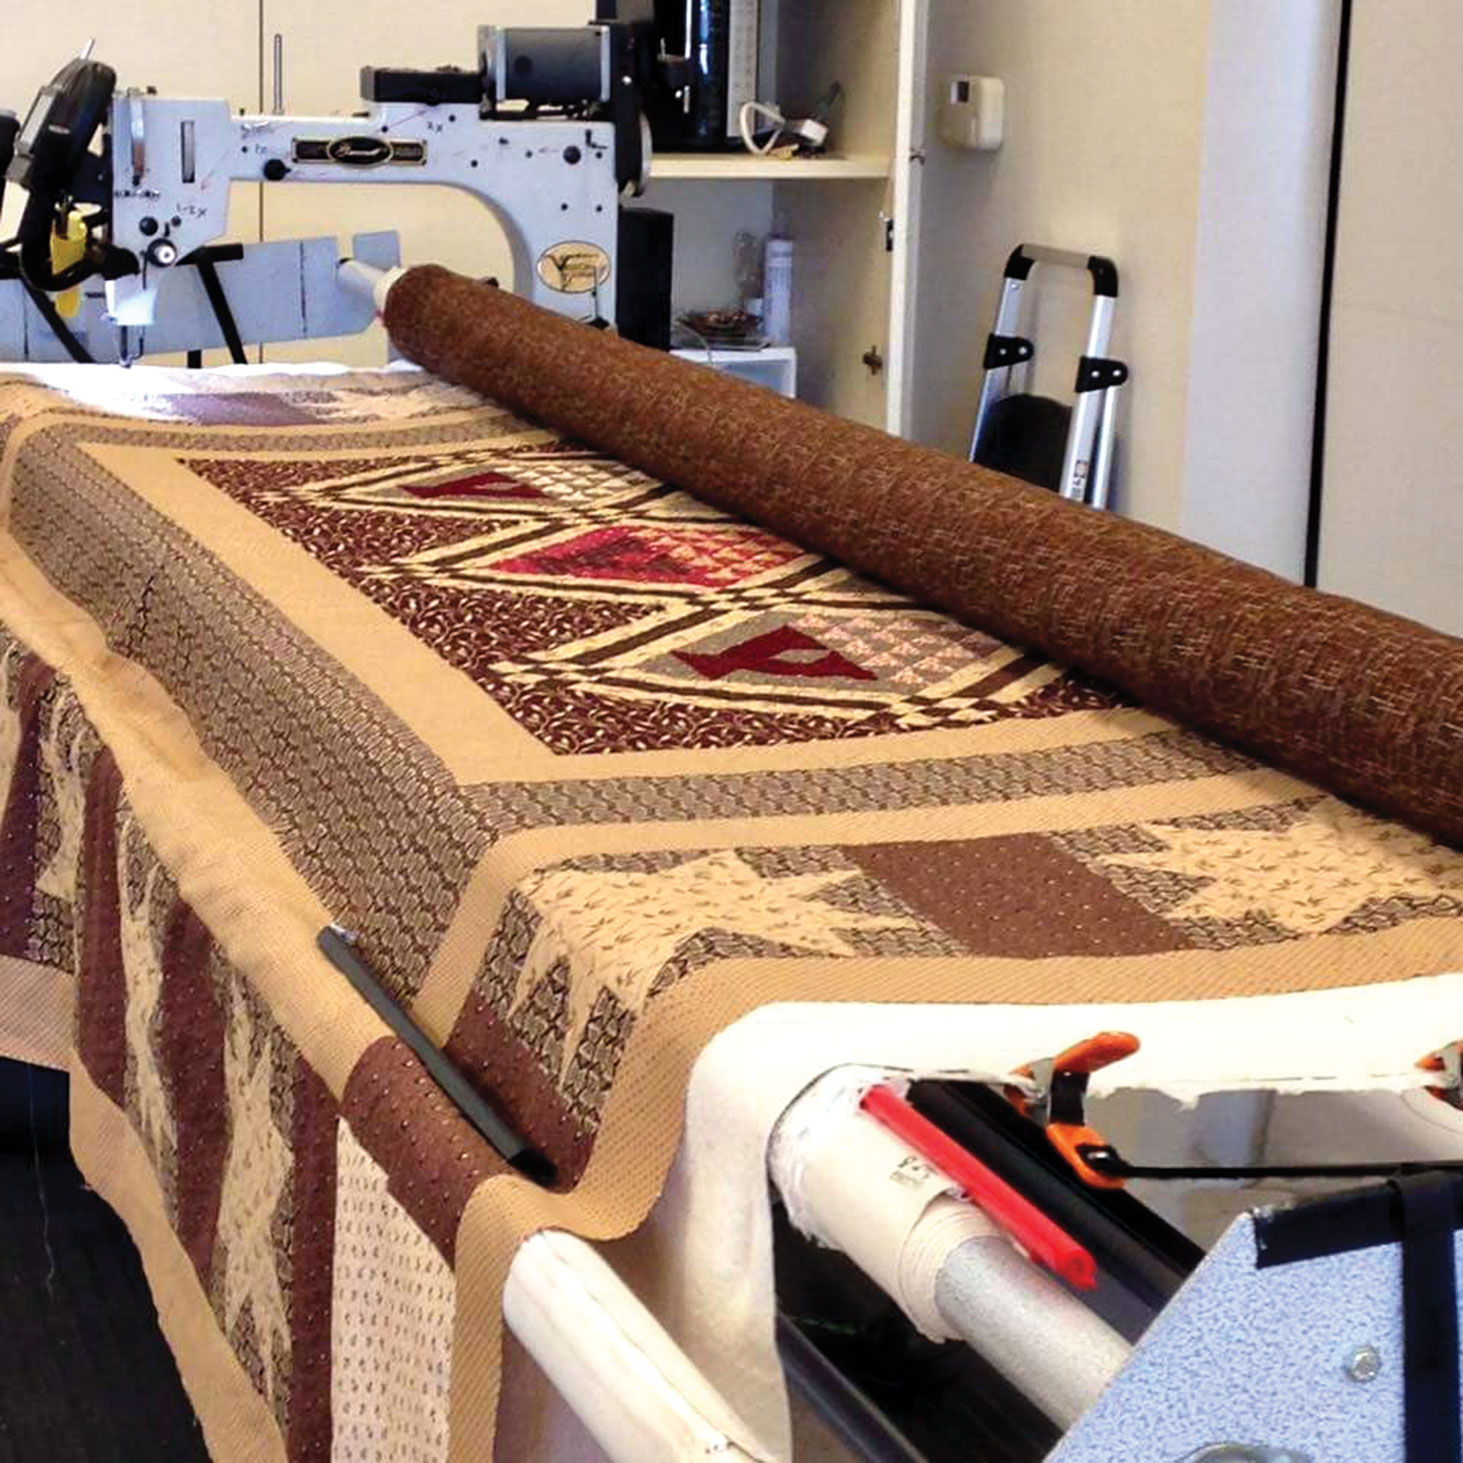 Mary Syer is the designer of this quilt on the longarm quilting machine.